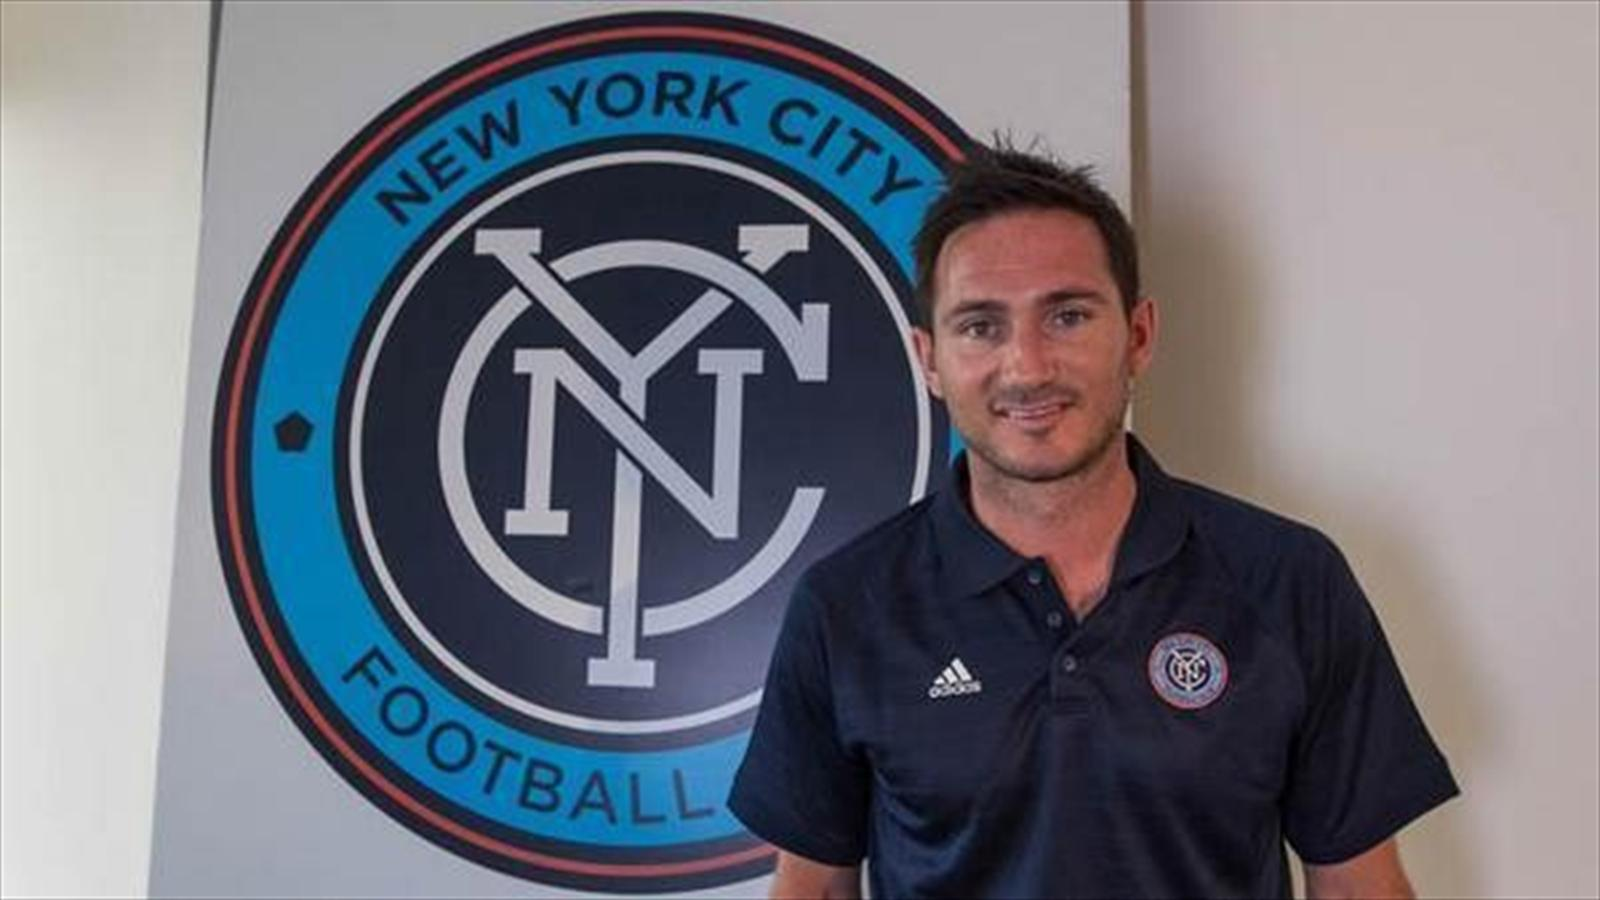 Frank Lampard unveiled at New York City FC (MLS)